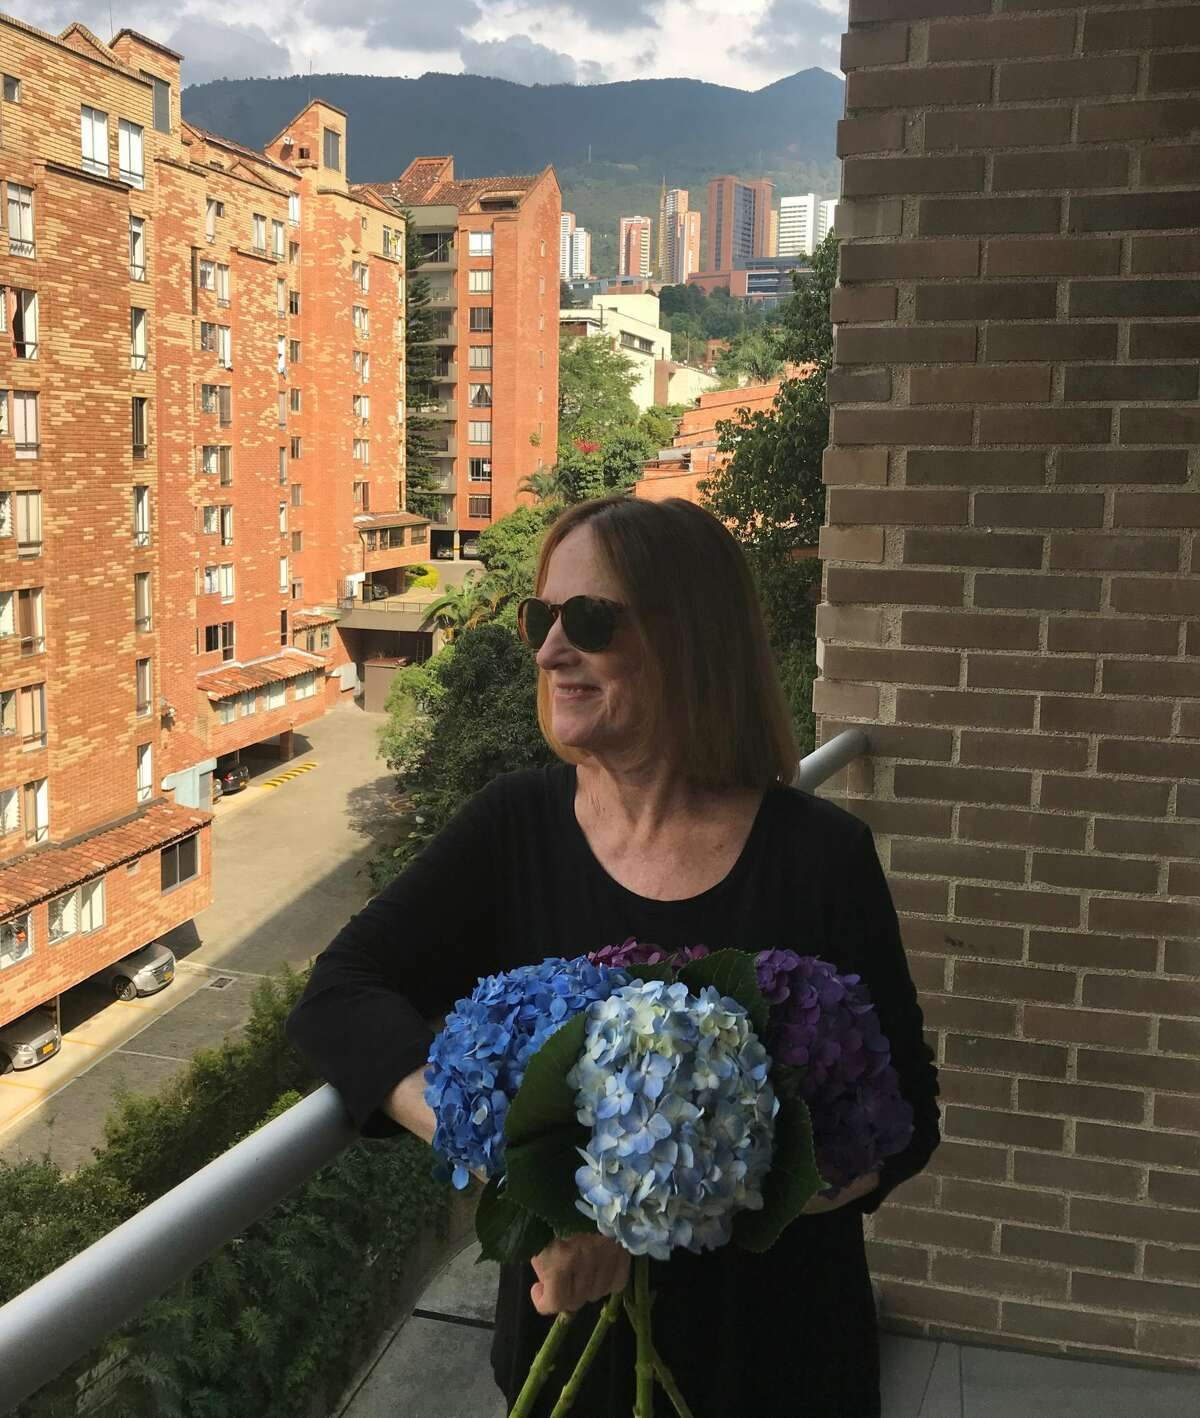 Kathryn Twomey in Medellin, Colombia. It was one of the few countries she and her husband, John, visited twice. (Provided photos.)